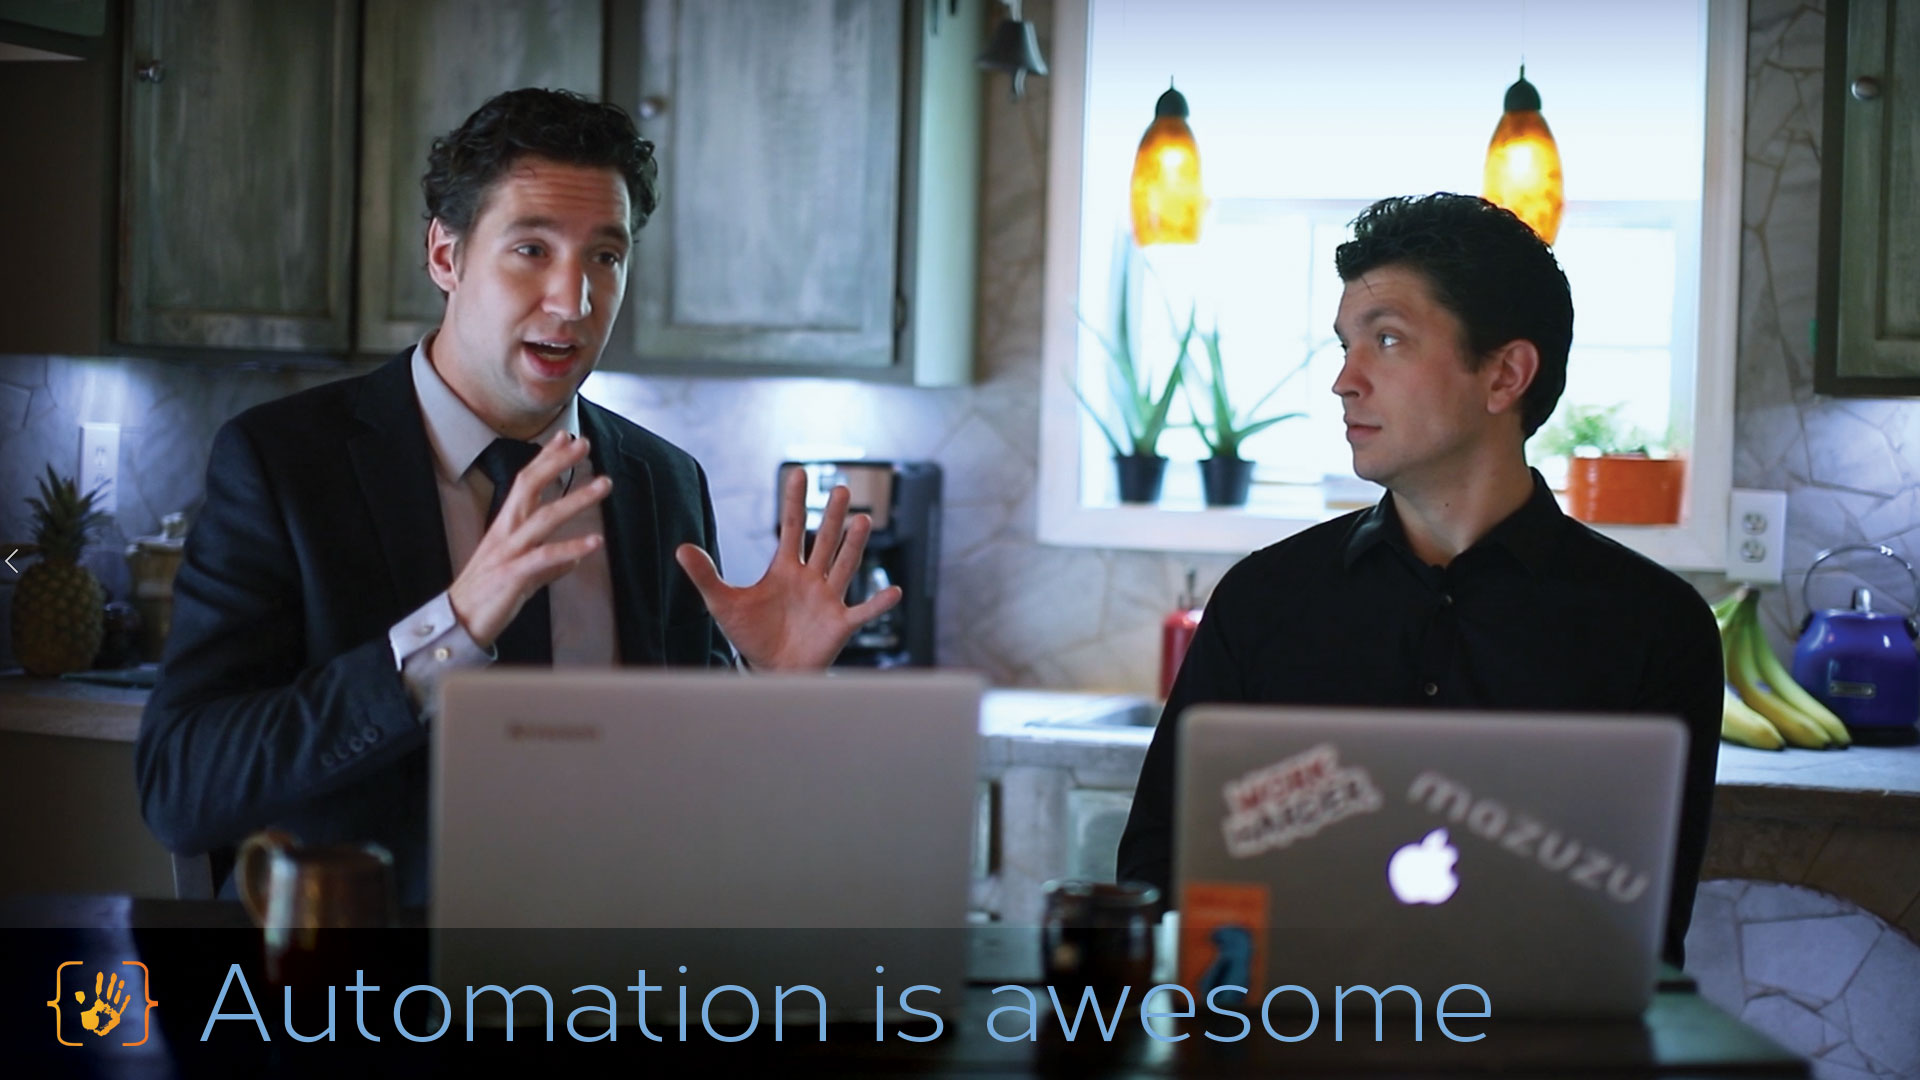 Watch Process automation - Focus on things that you do best on Youtube